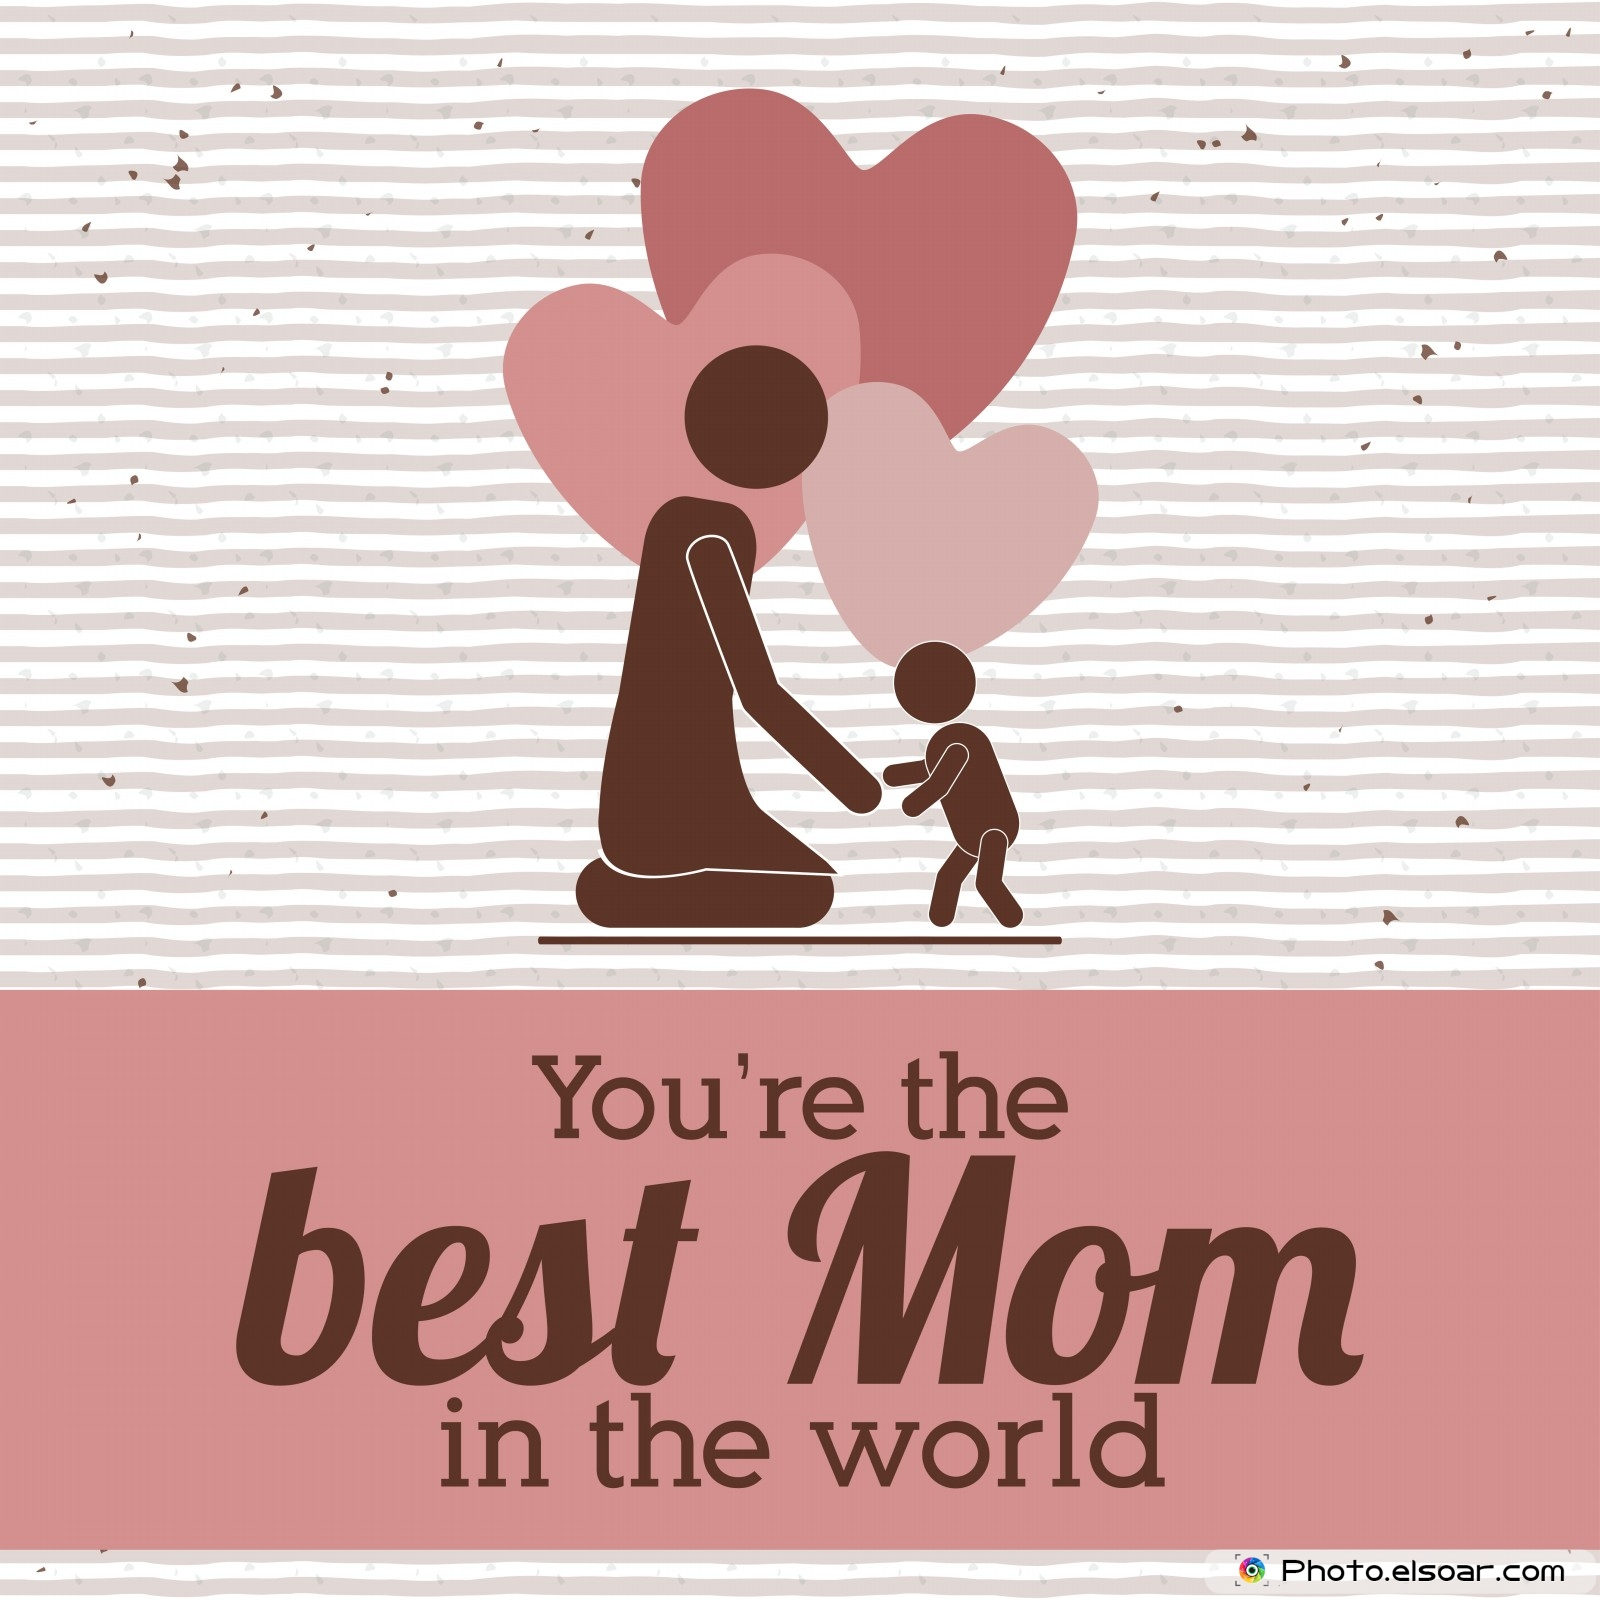 You Are The Best Mom In The World : www.galleryhip.com - The Hippest ...